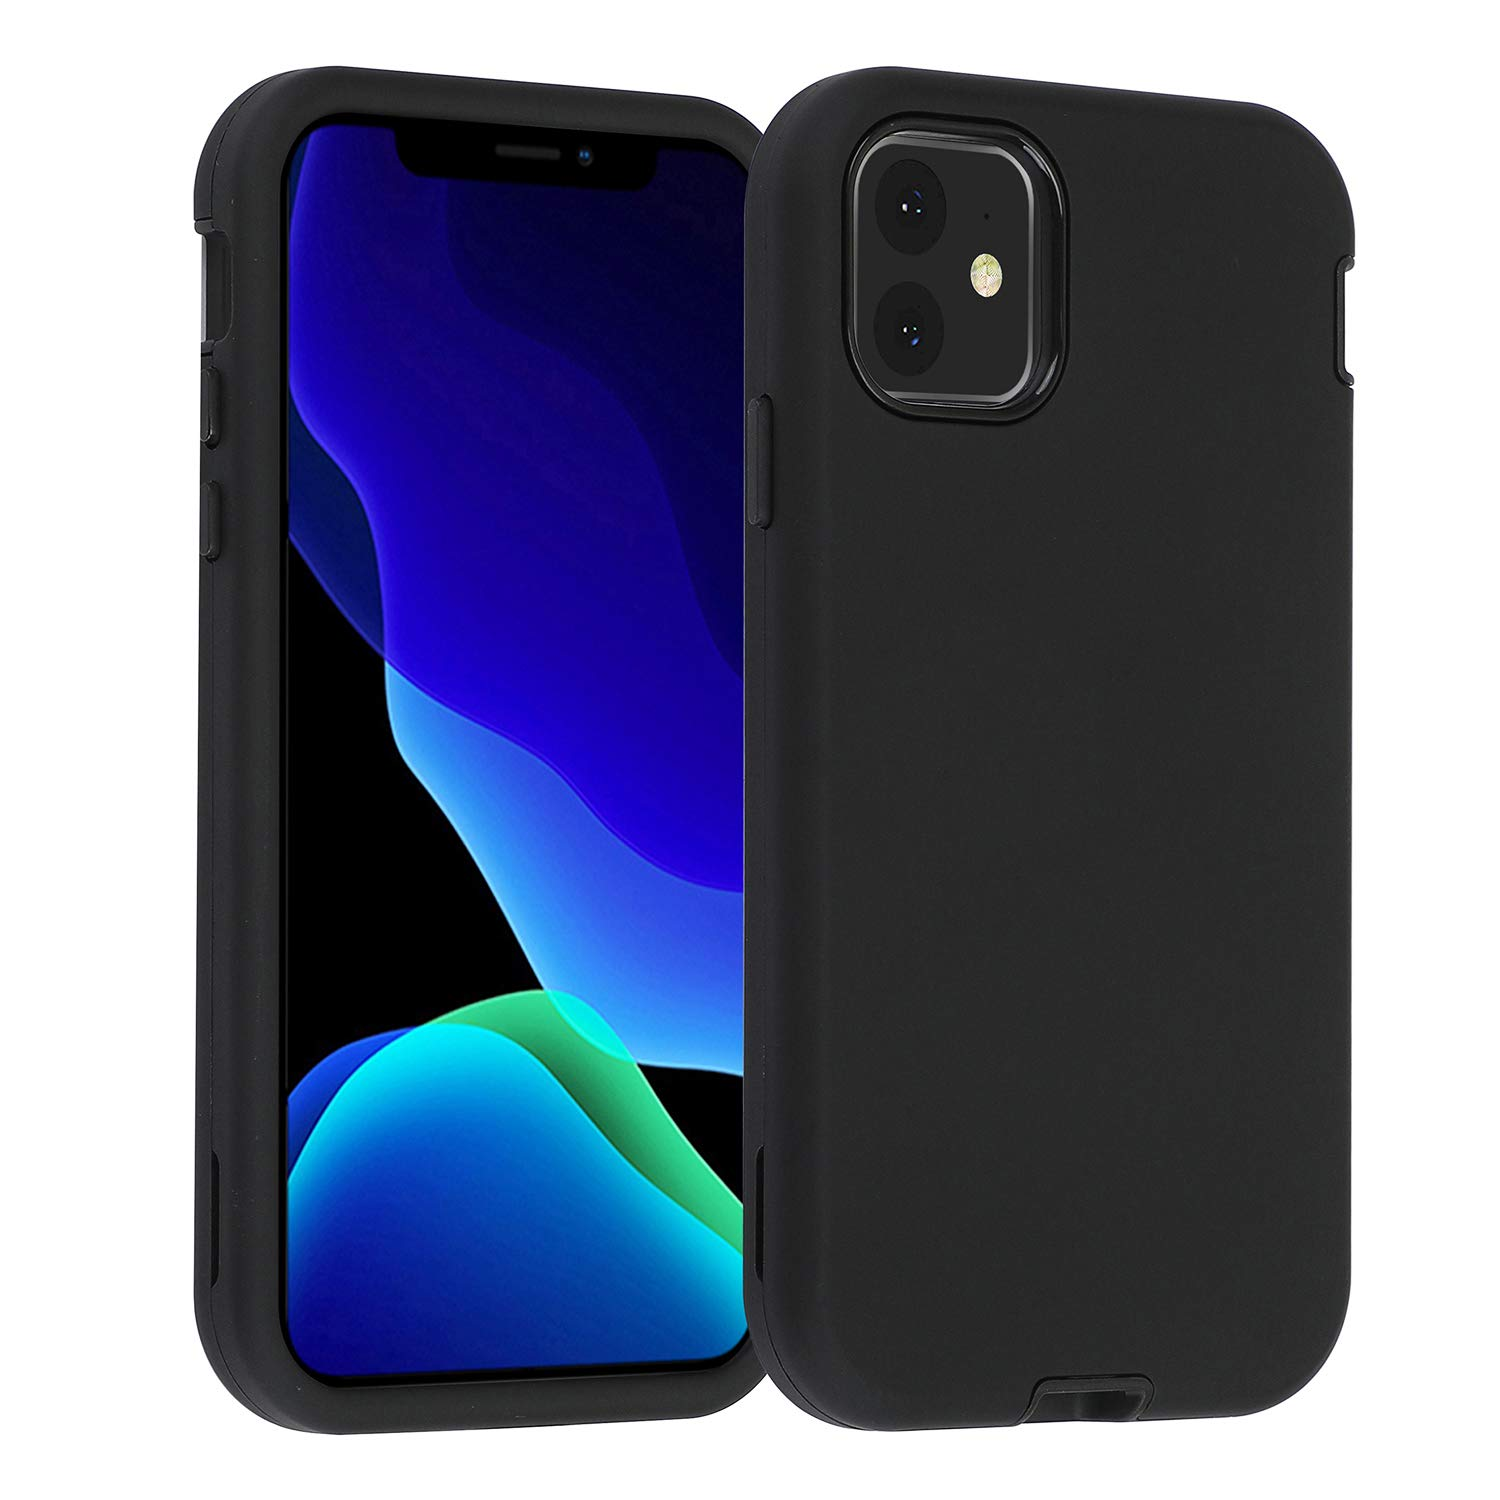 """Co-Goldguard Case for iPhone 11 2019 6.1"""" Heavy Duty Armor 3 in 1 Armor Rugged Cover Shockproof Drop-Proof Scratch-Resistant Tough Shell Design for iPhone 11 6.1 inch,Black"""